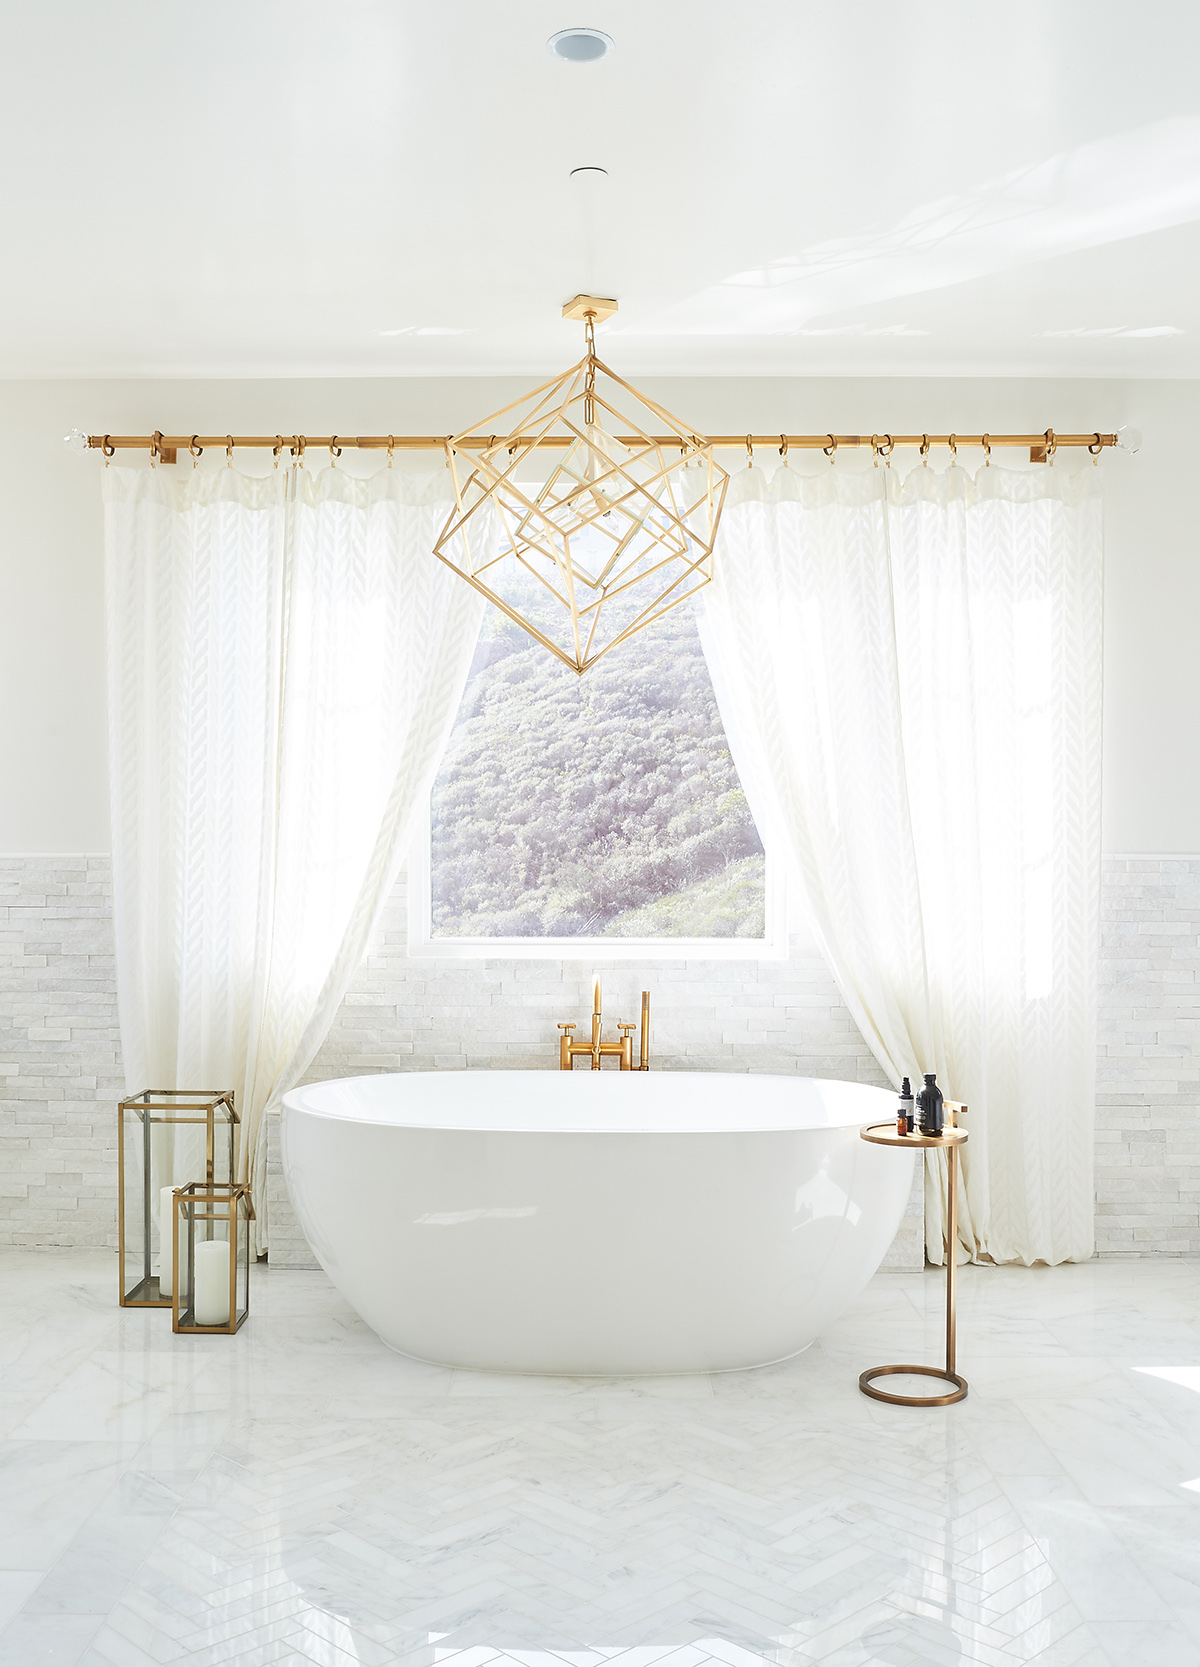 Photo of a newly installed bathtub in front of a window by Jaki Yermian of JY Design Interiors